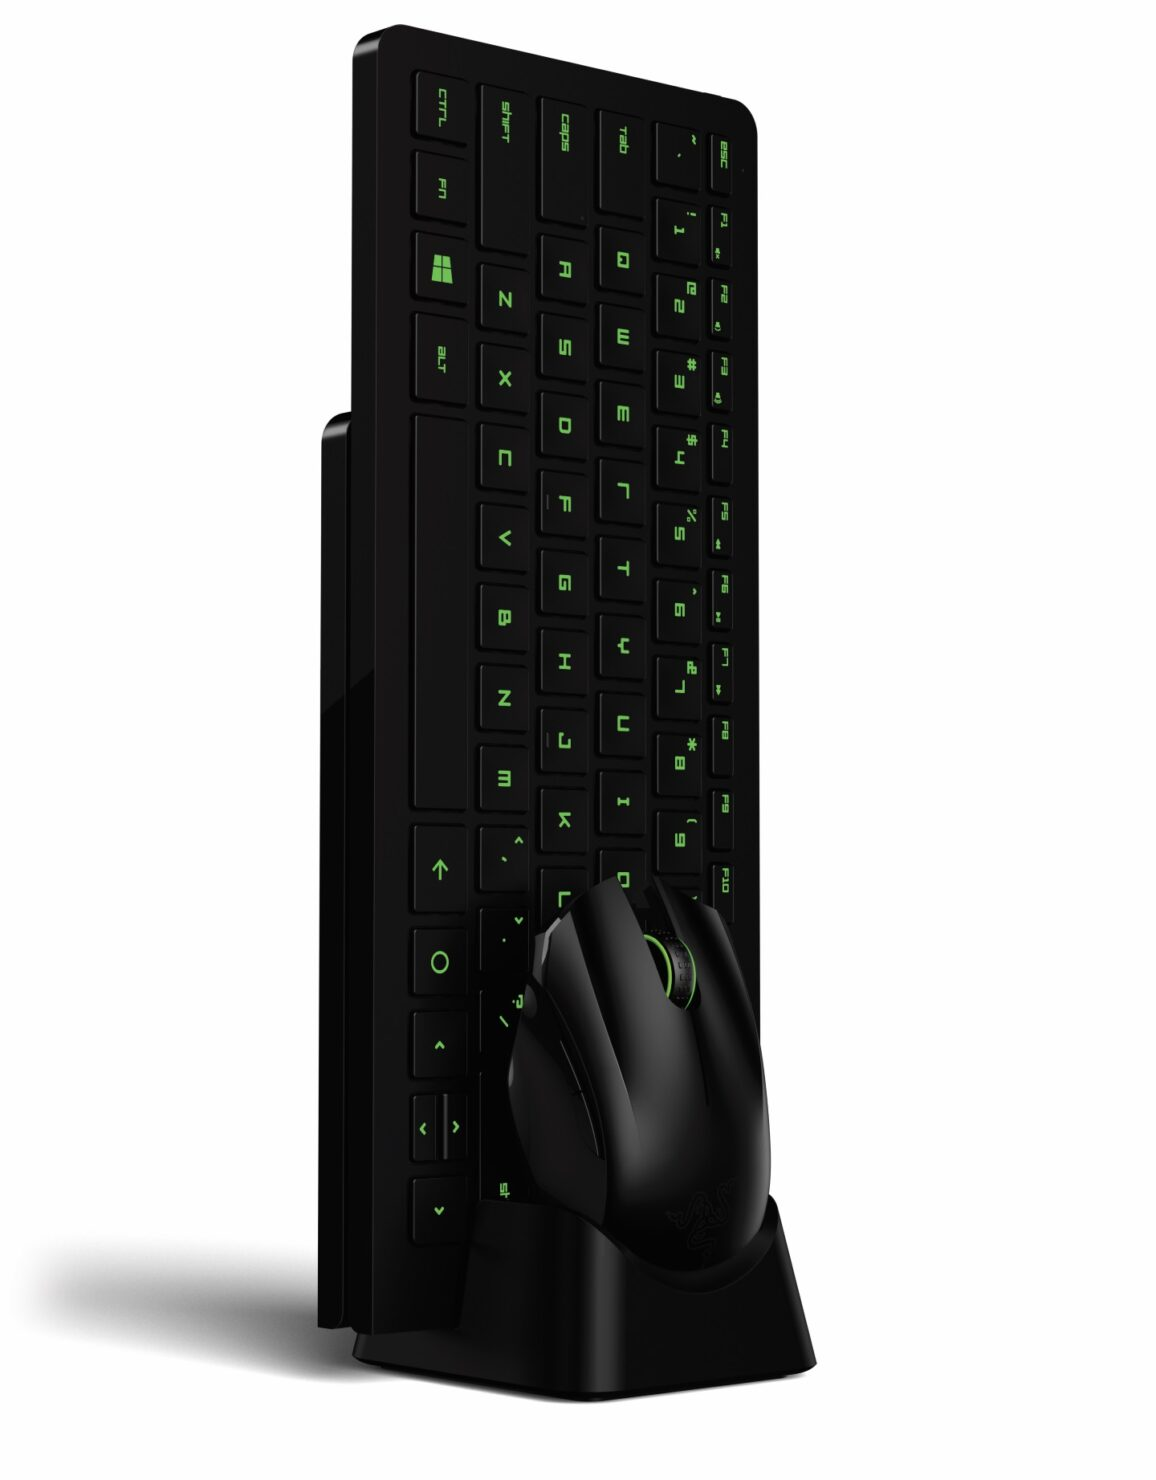 razer-turred-pc-keyboard-and-mouse_1-2